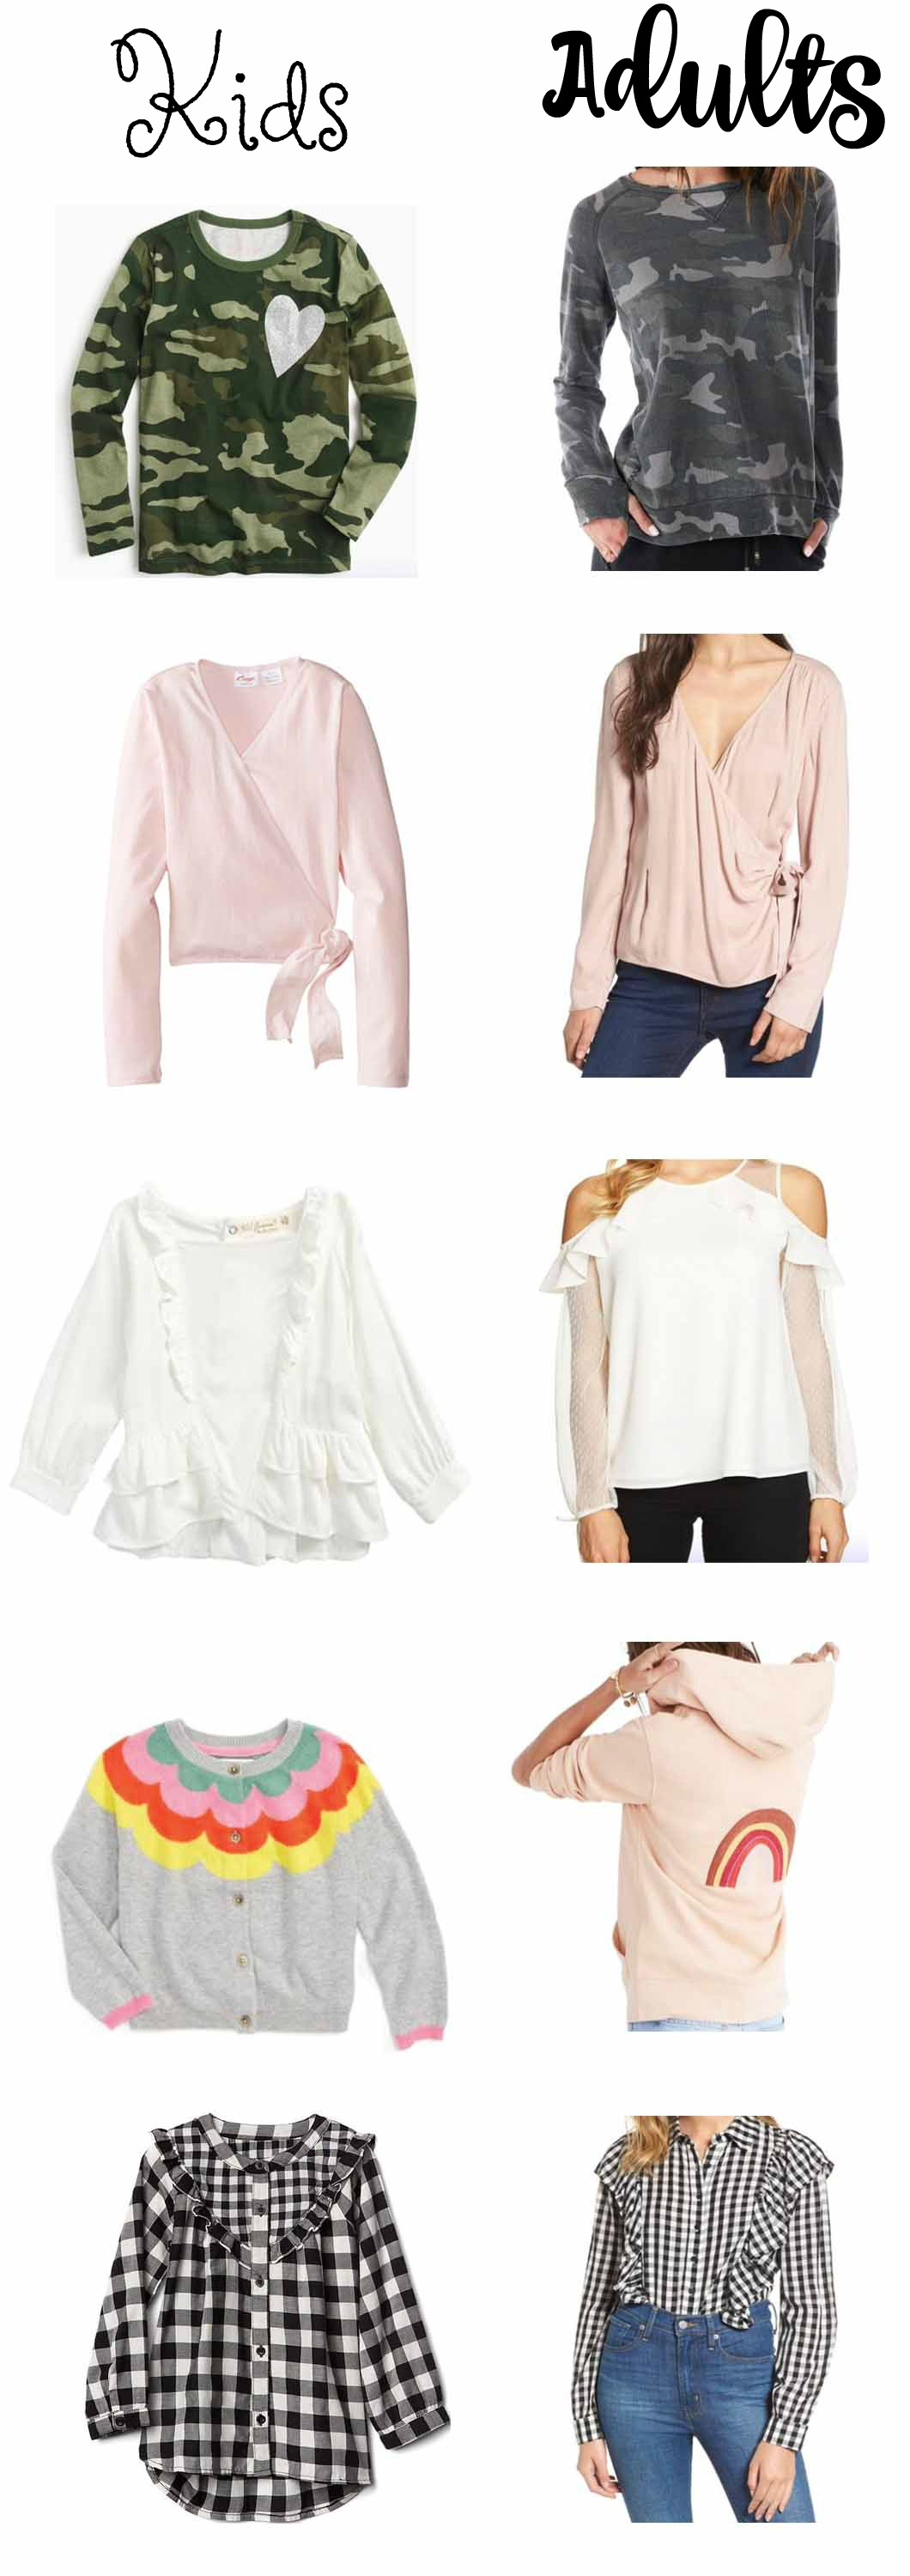 mommyanddaughtermatchingtops - Mommy and Me Outfits - Matching Fall Outfits by Atlanta lifestyle blogger Happily Hughes